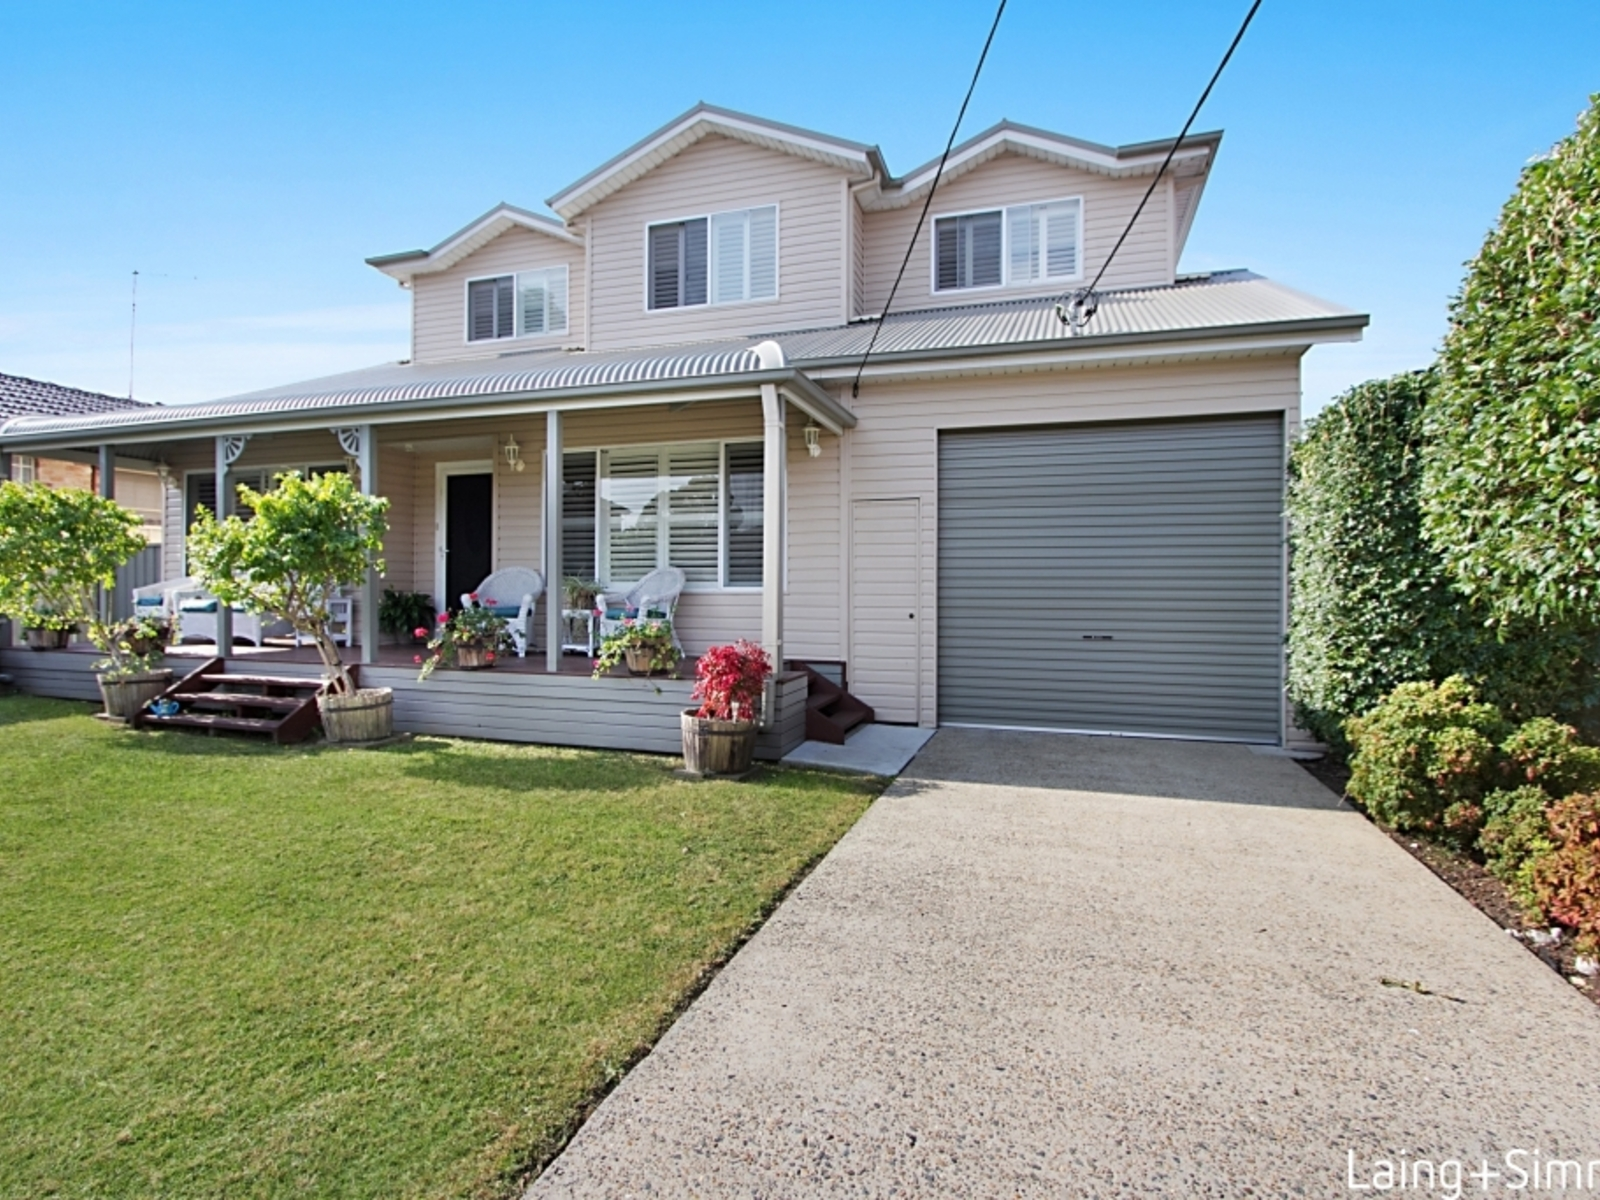 pendle hill real estate for sale